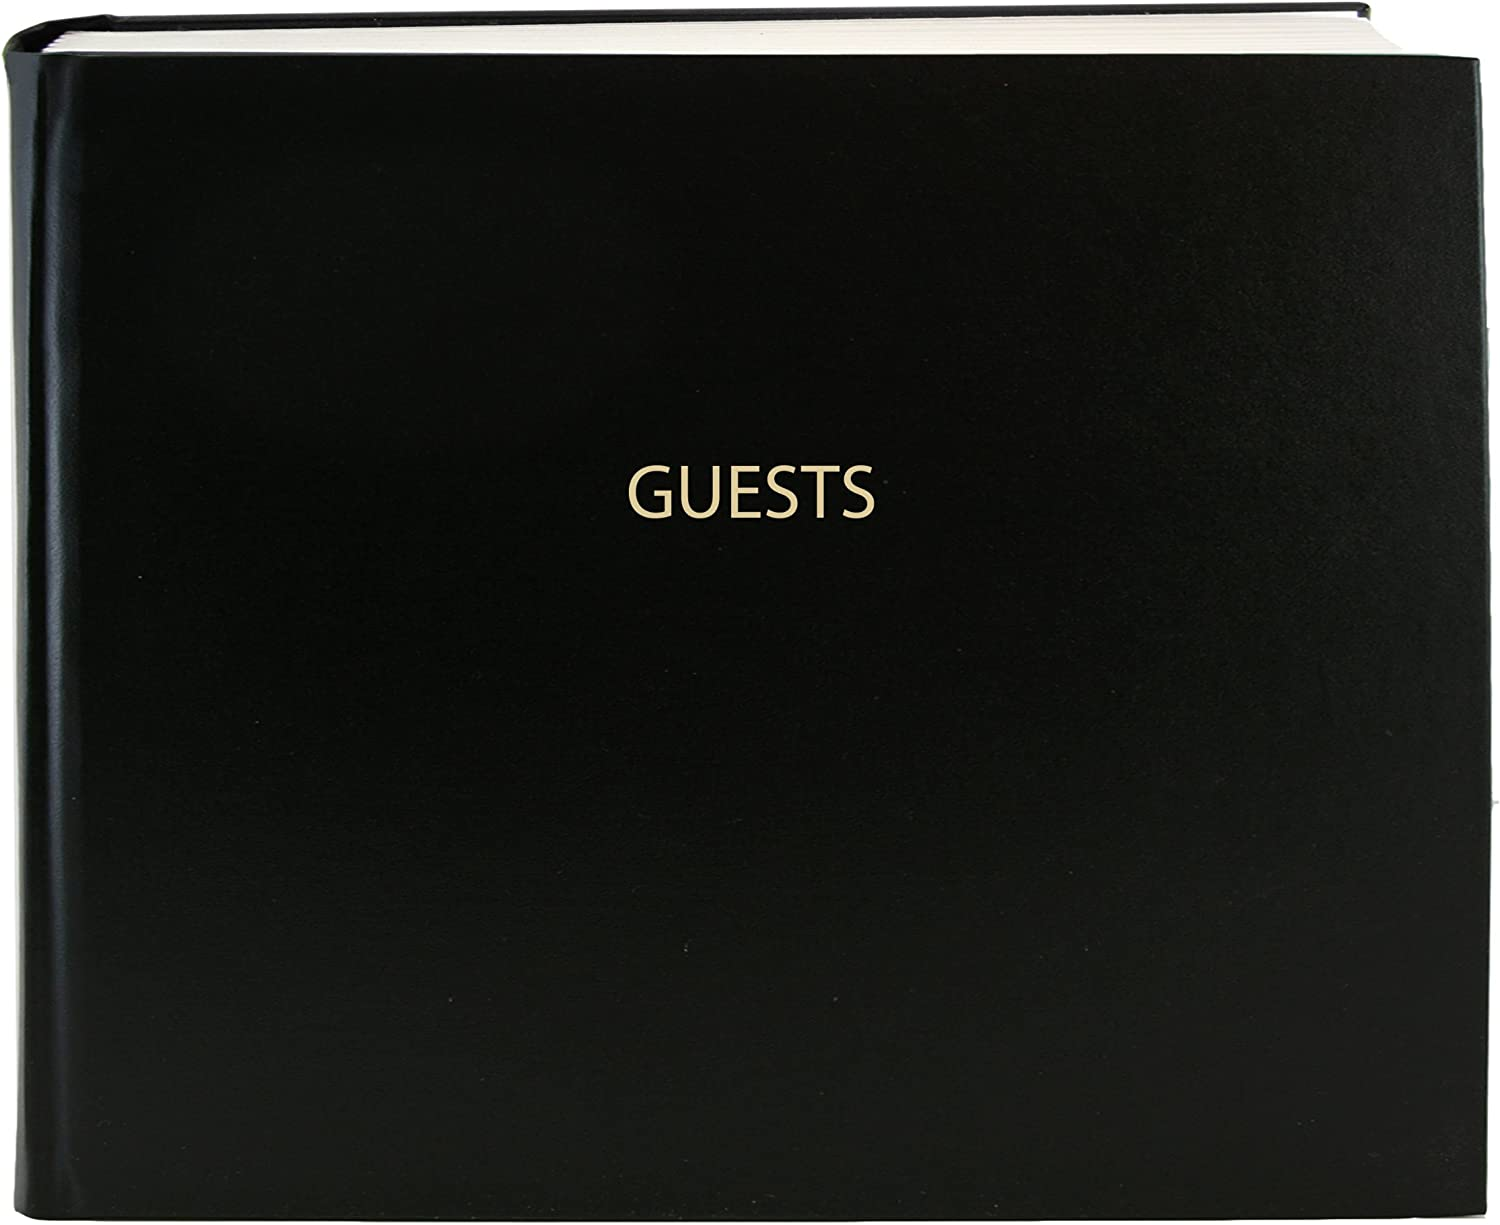 """BookFactory Guest Book (120 Pages) / Guest Sign-in Book/Guest Registry/Guestbook - Black Cover, Smyth Sewn Hardbound, 8 7/8"""" x 7"""" (LOG-120-GUEST-A-LKT25)"""